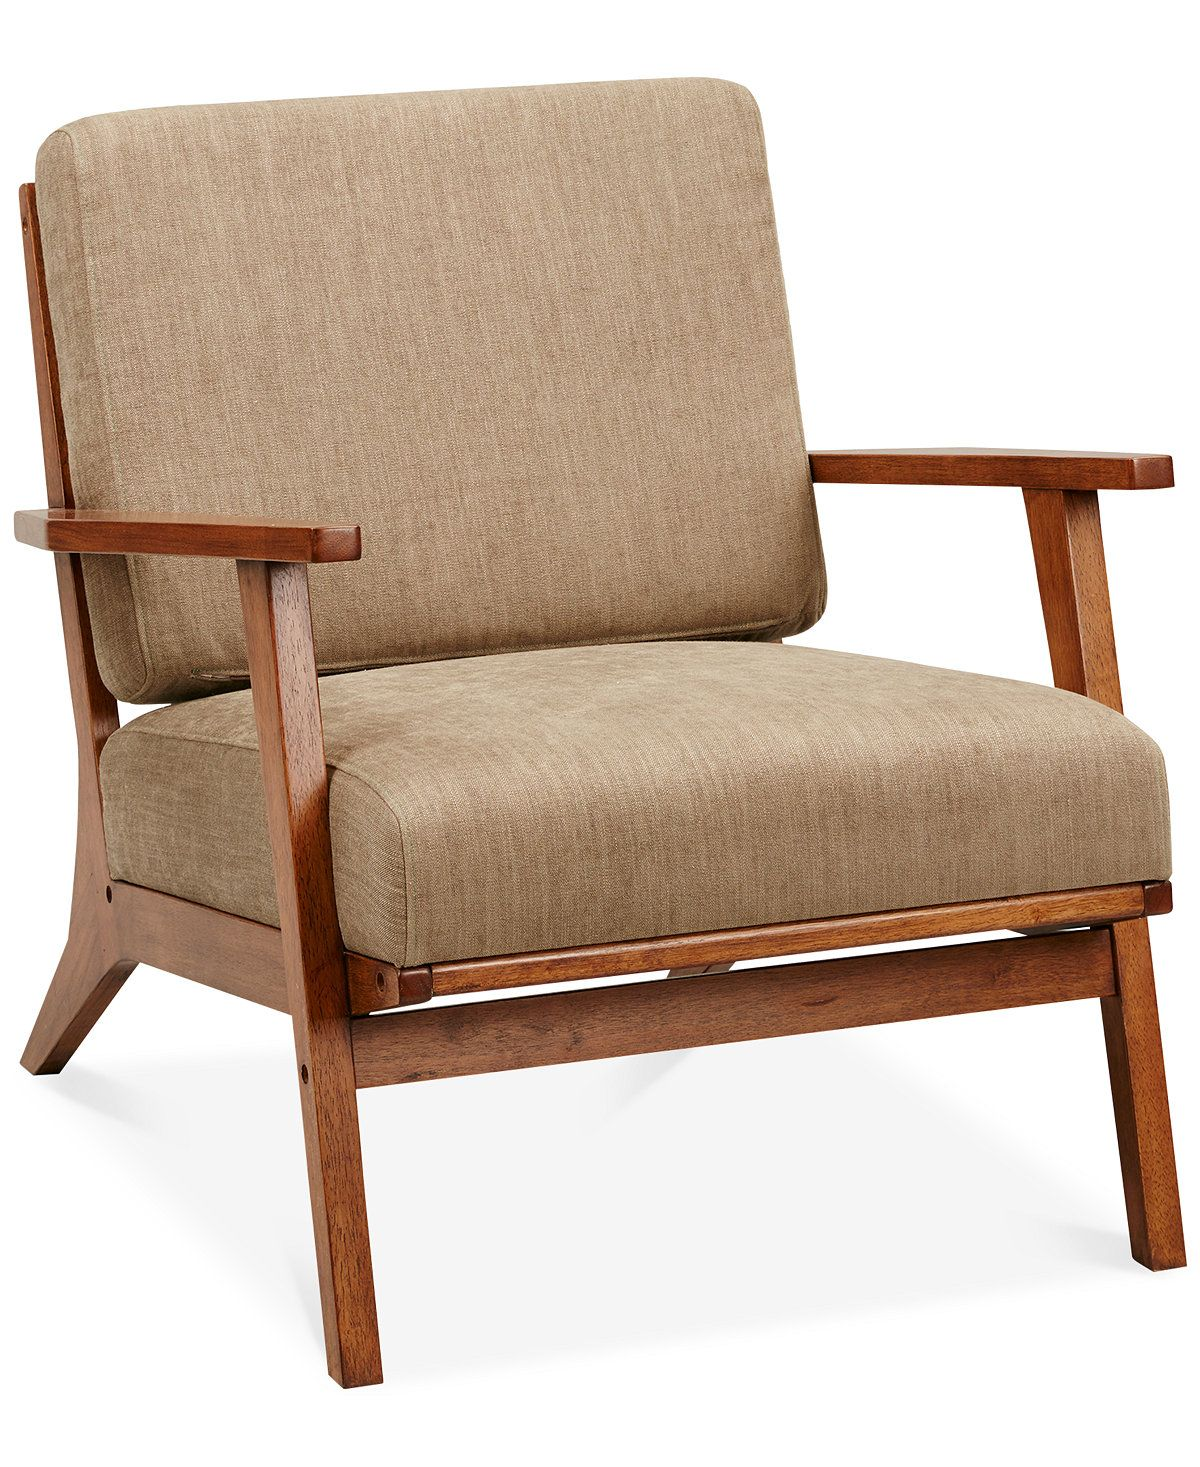 Best Axis Exposed Wood Accent Chair Quick Ship Chairs 640 x 480